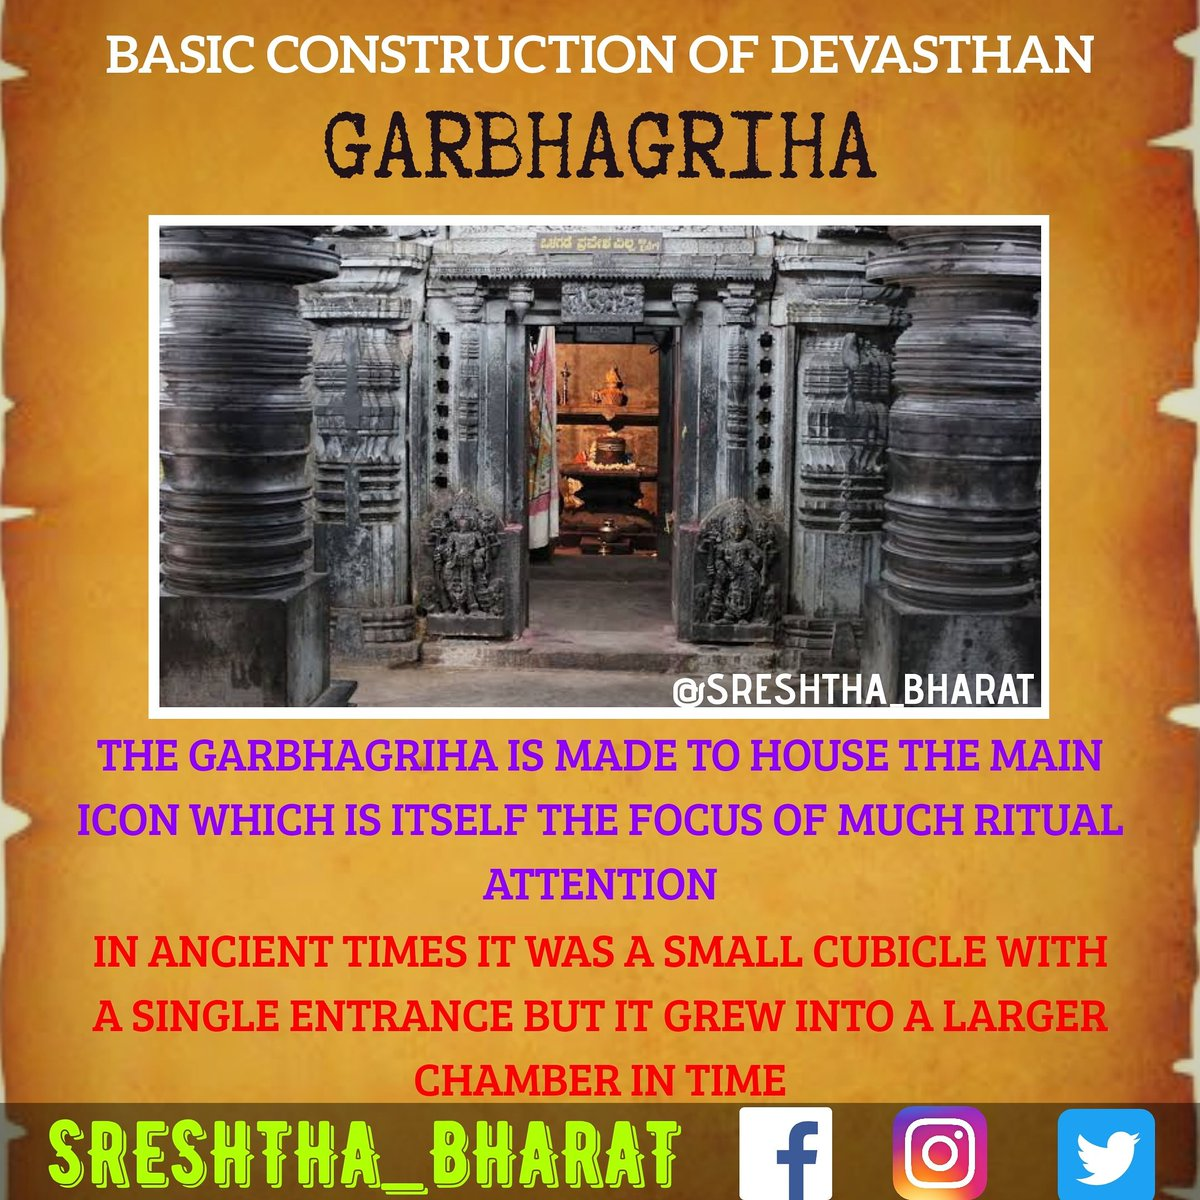 #temple_architecture  We will be getting closer to the Great Temple Architecture of our Sreshtha Bharat  Follow @Sreshthabharat on Facebook | Instagram | Twitter 🙏  #indianculture #indianarchitecture #hinduarchitecture #temple  #worship #templeworship #dravida #mandir #devasthan https://t.co/Ji4MplTo43